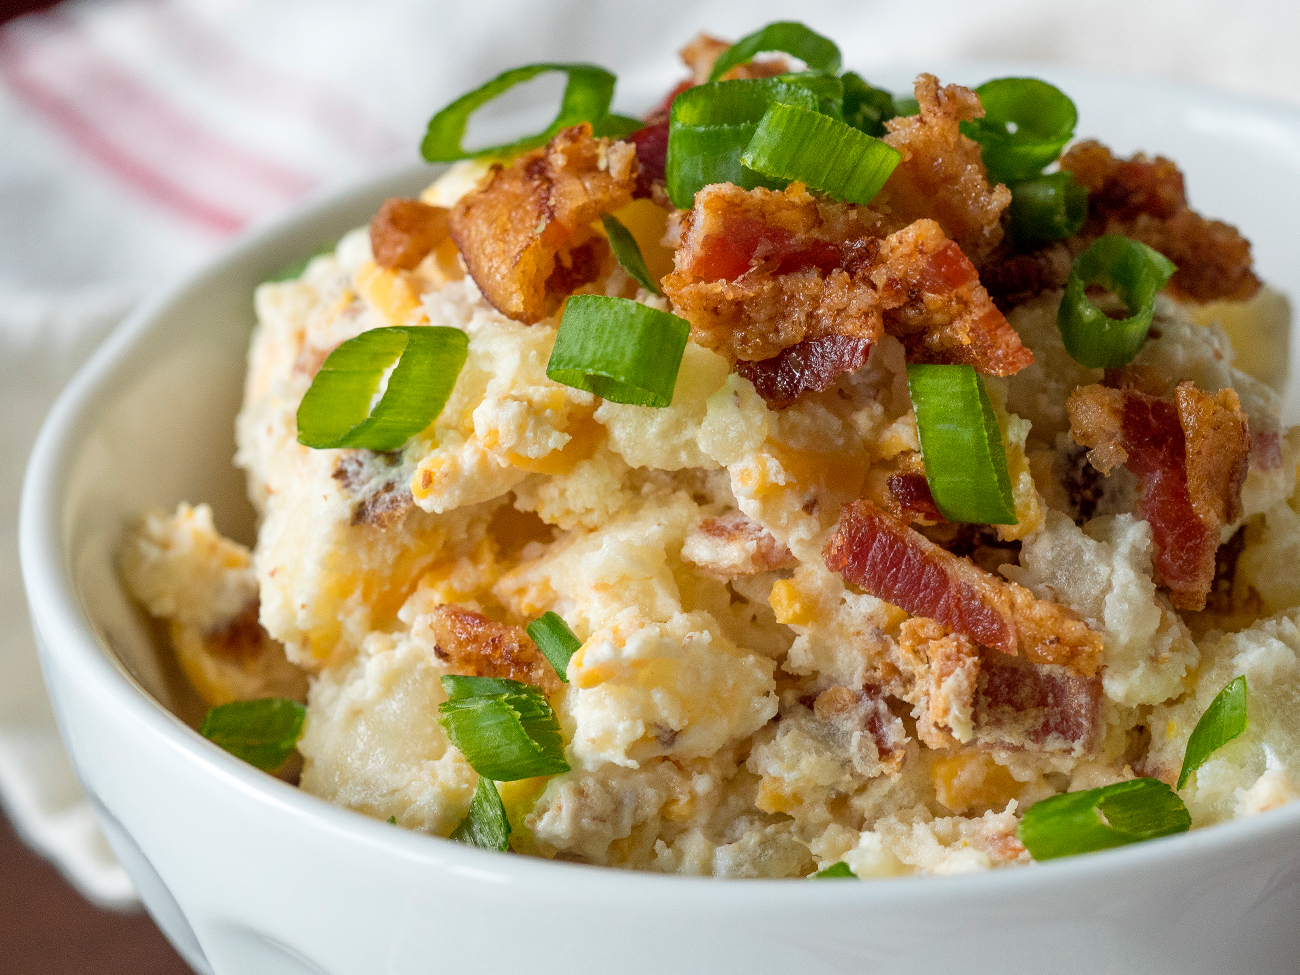 Loaded Baked Potato Salad Horizontal 1